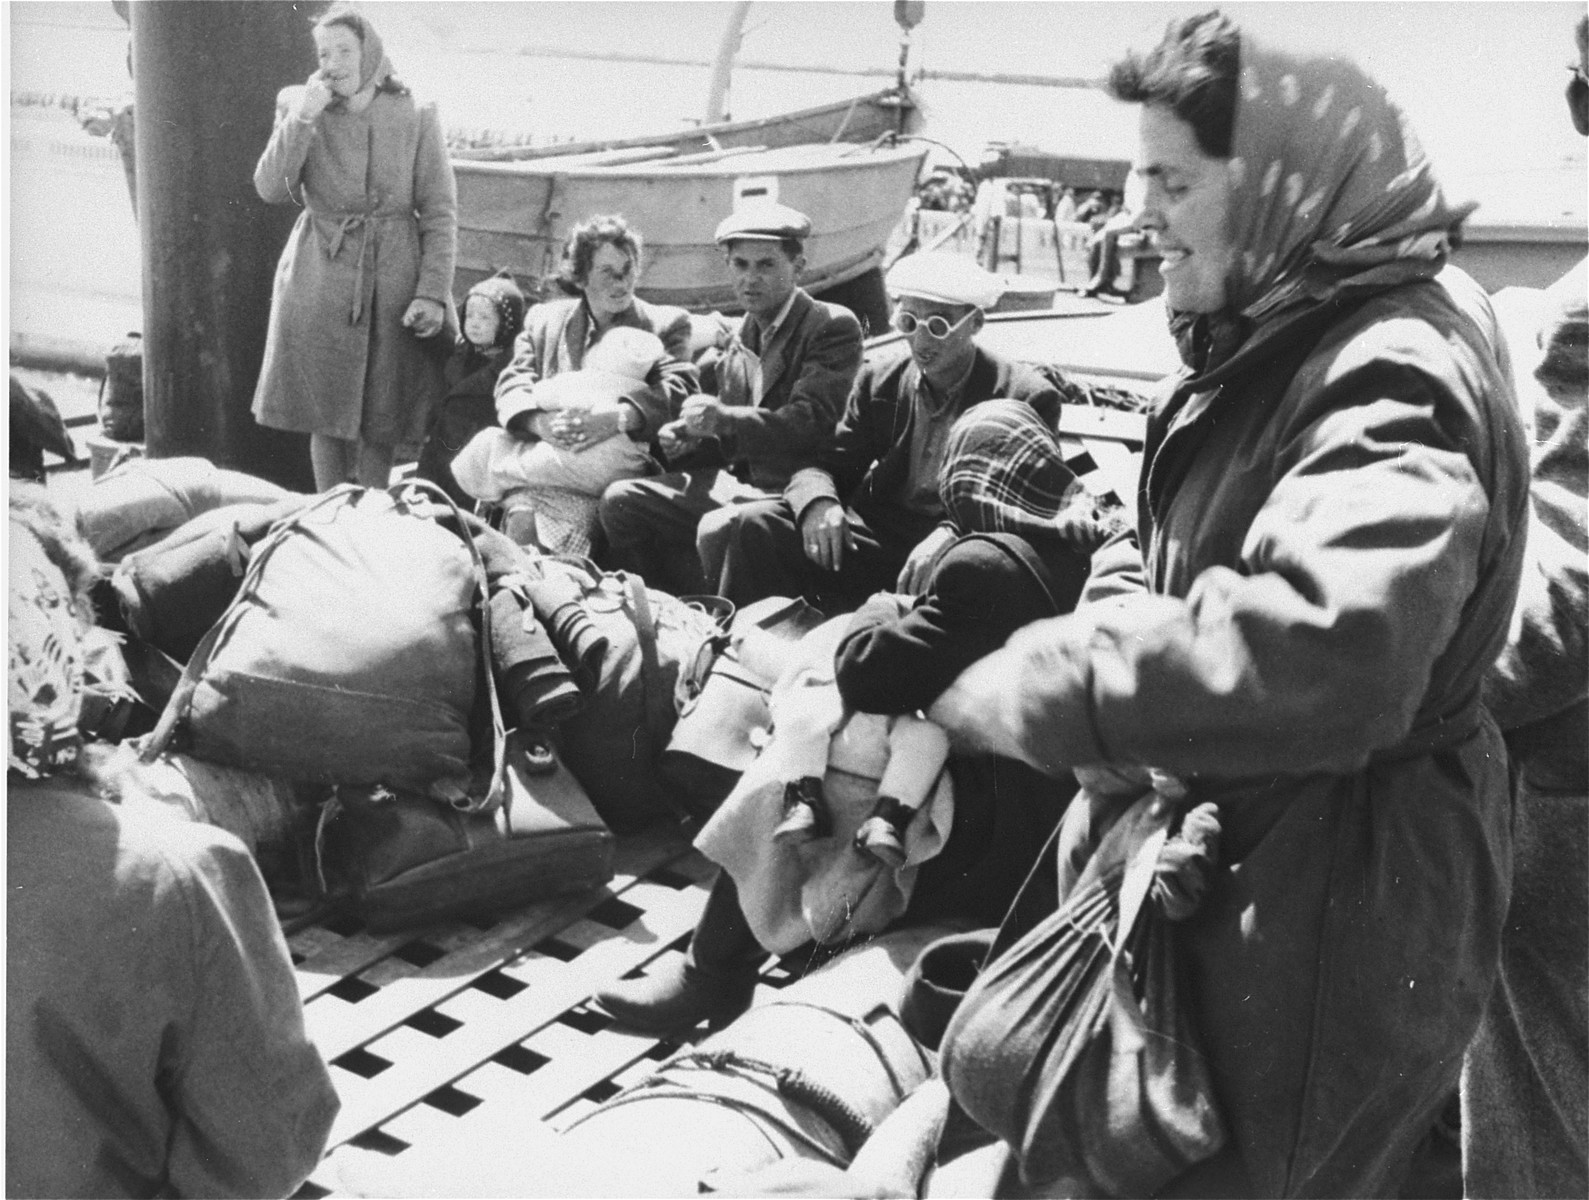 Exodus 1947 refugees on board the President Warfield, which is docked at a quay in Sete's harbor.